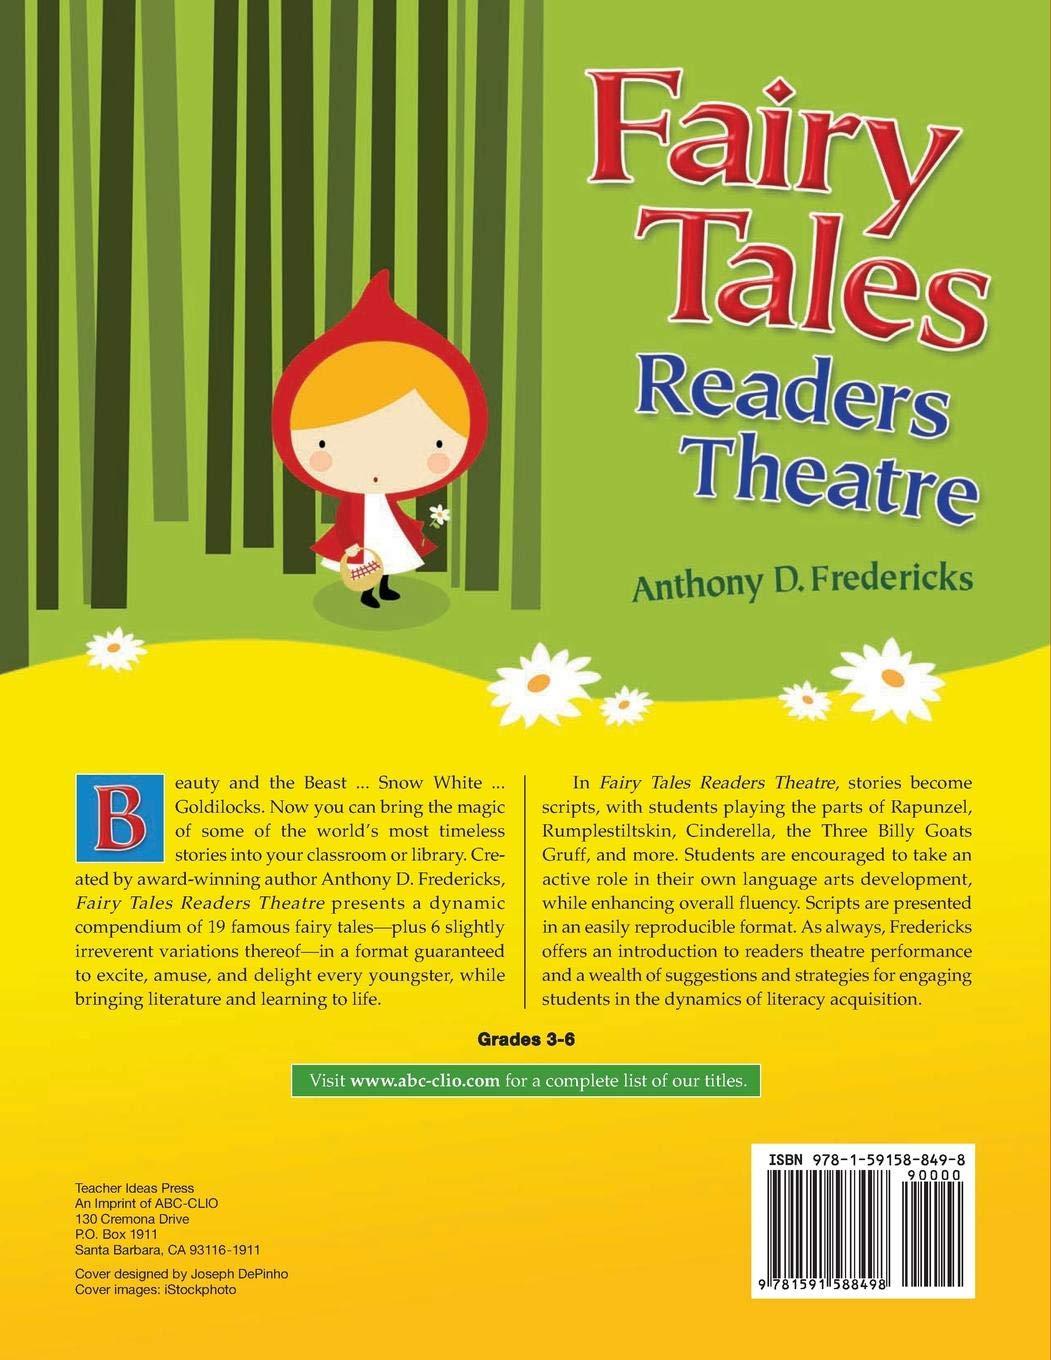 Fairy Tales Readers Theatre: Amazon co uk: Anthony Fredericks